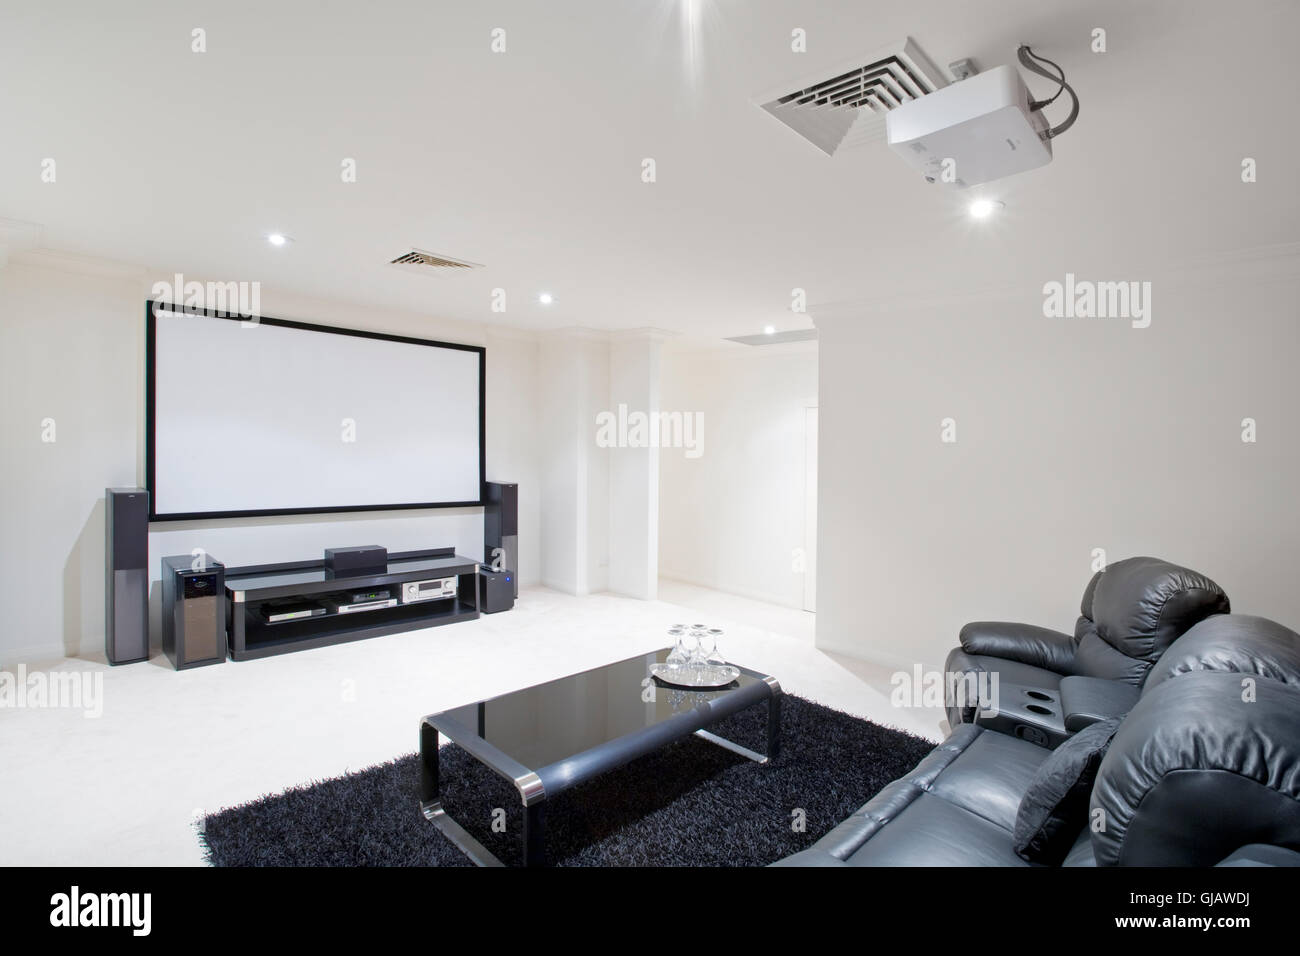 Home Theatre Room Stock Photo: 114565518 - Alamy